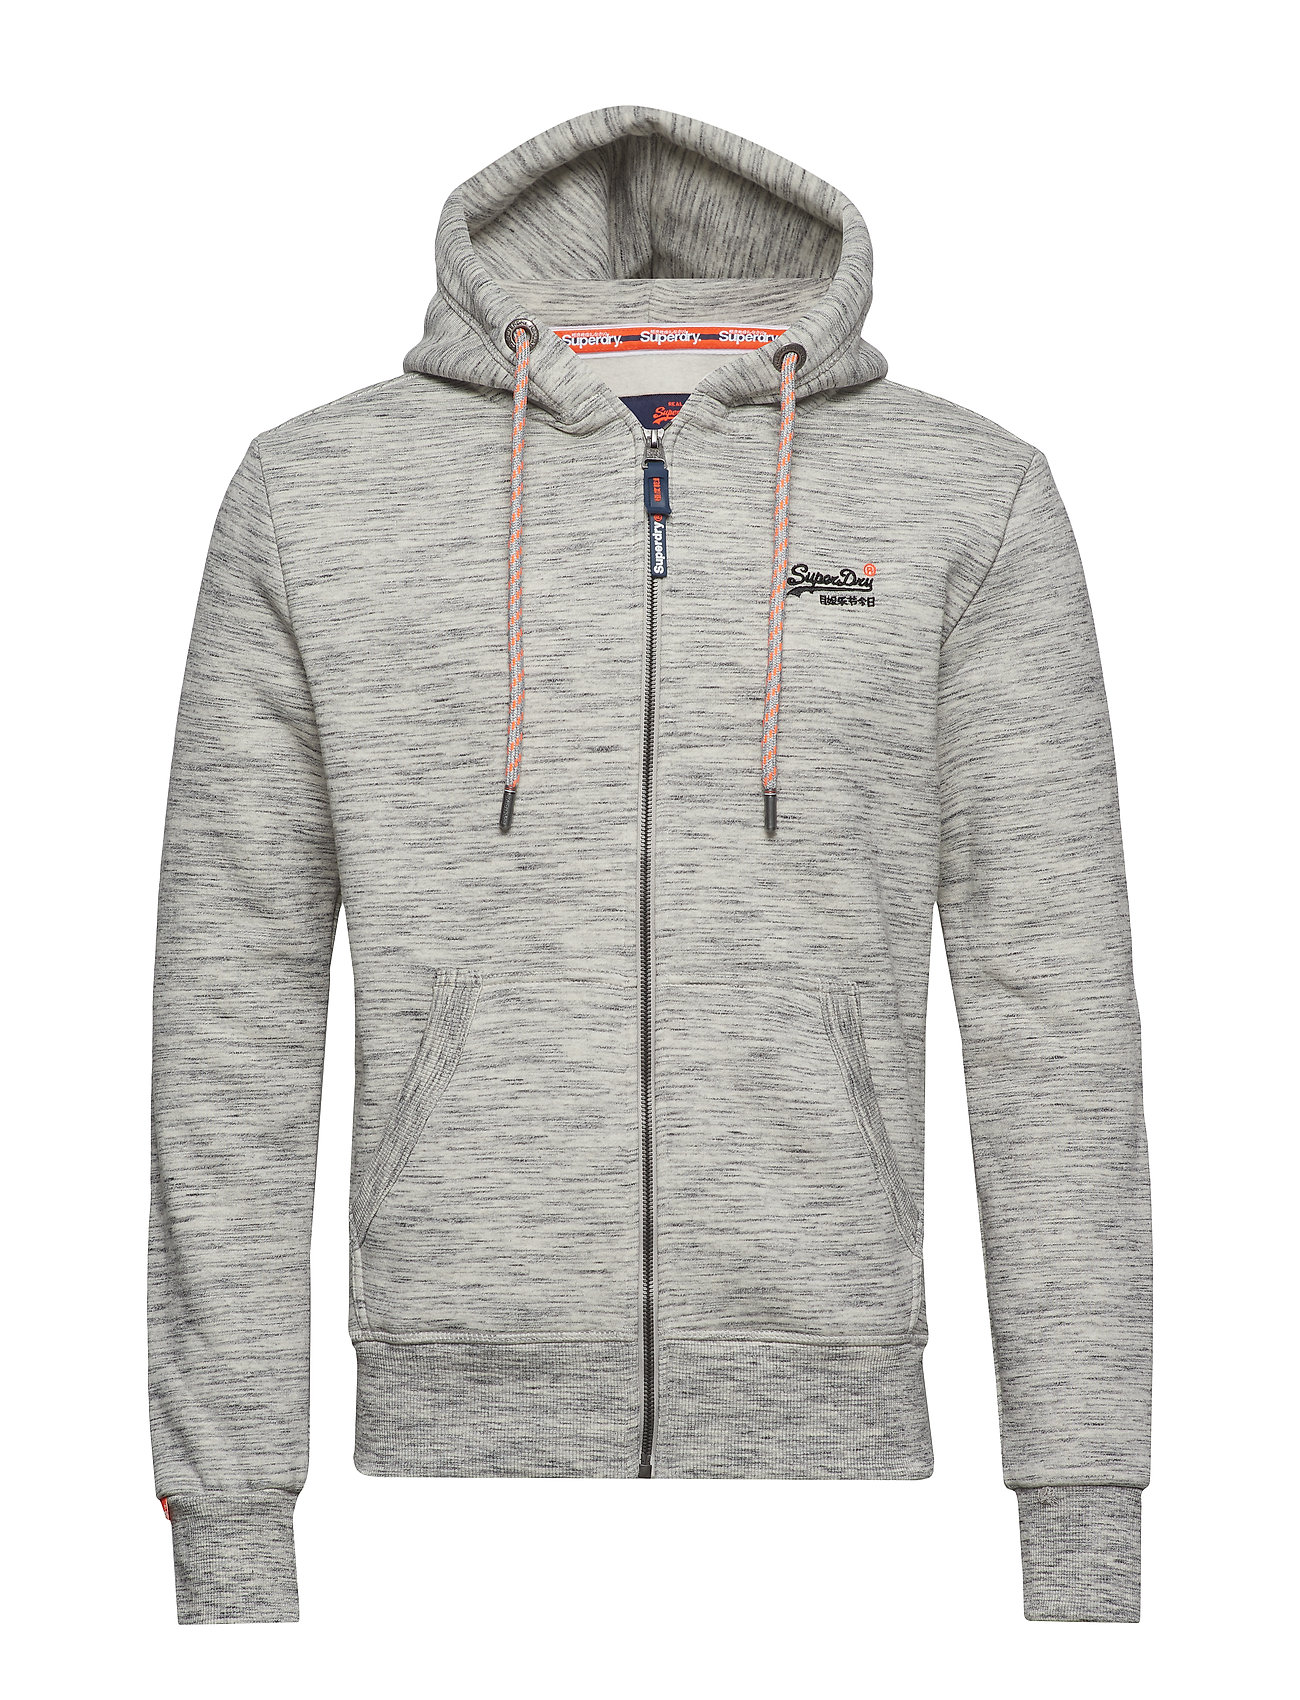 Superdry ORANGE LABEL CLASSIC ZIP HOOD - ASH GREY HEATHER